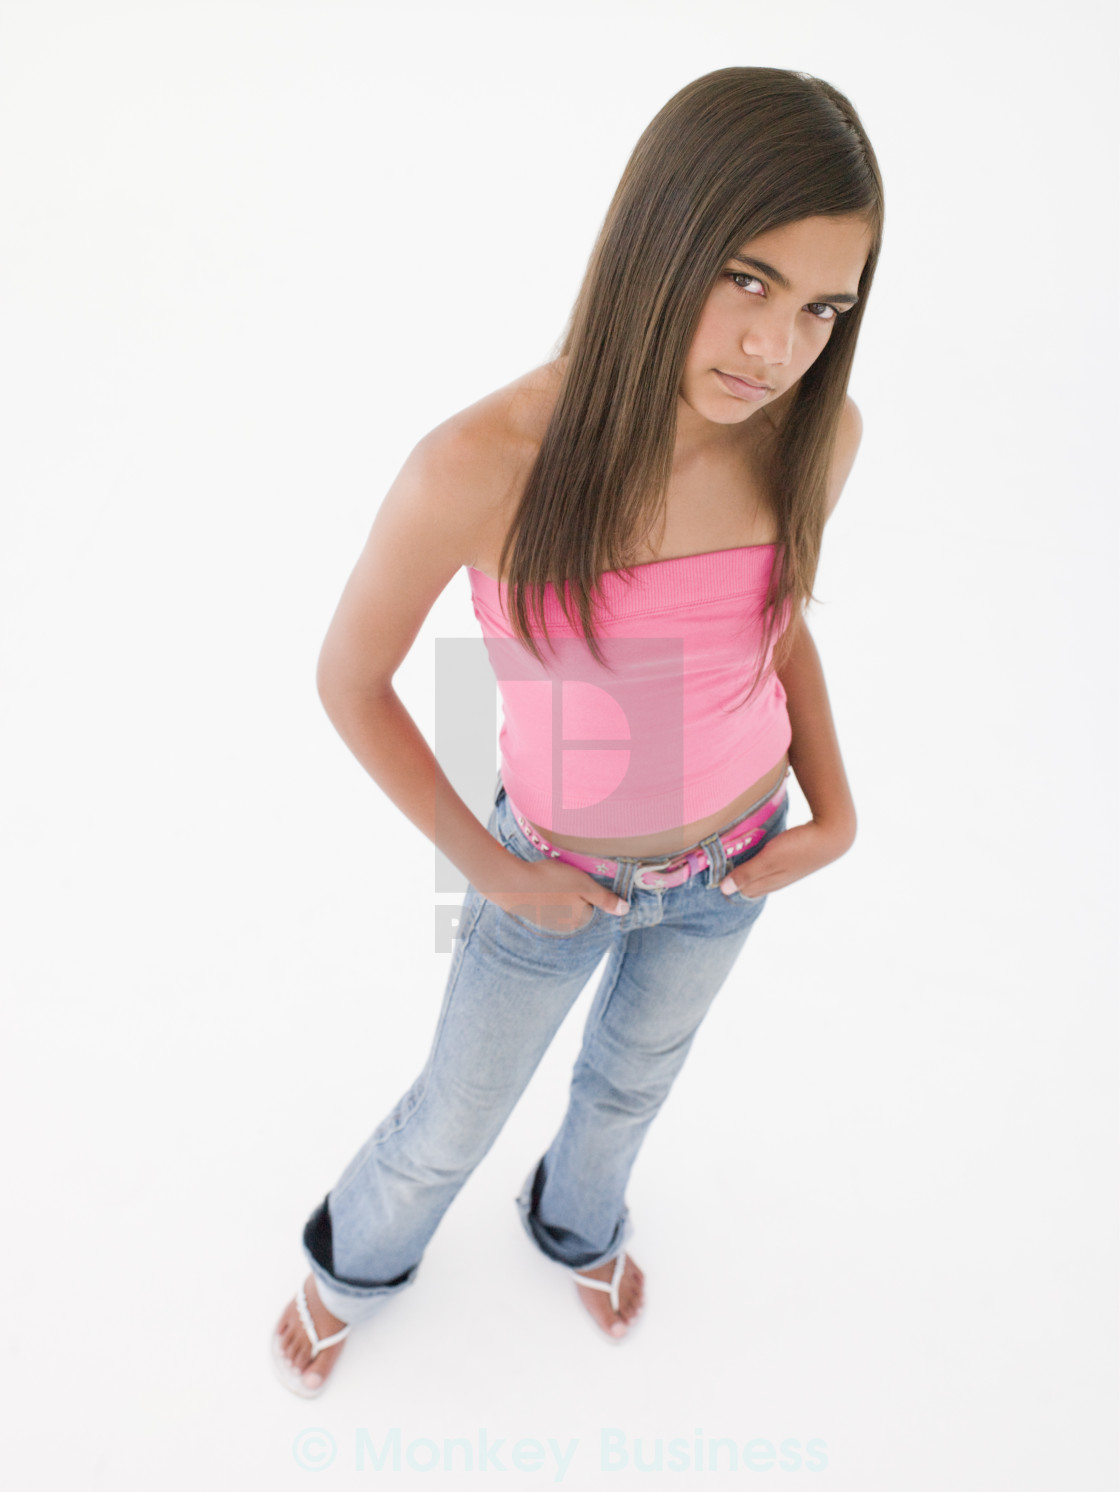 Young girl standing with hands in pockets frowning - License